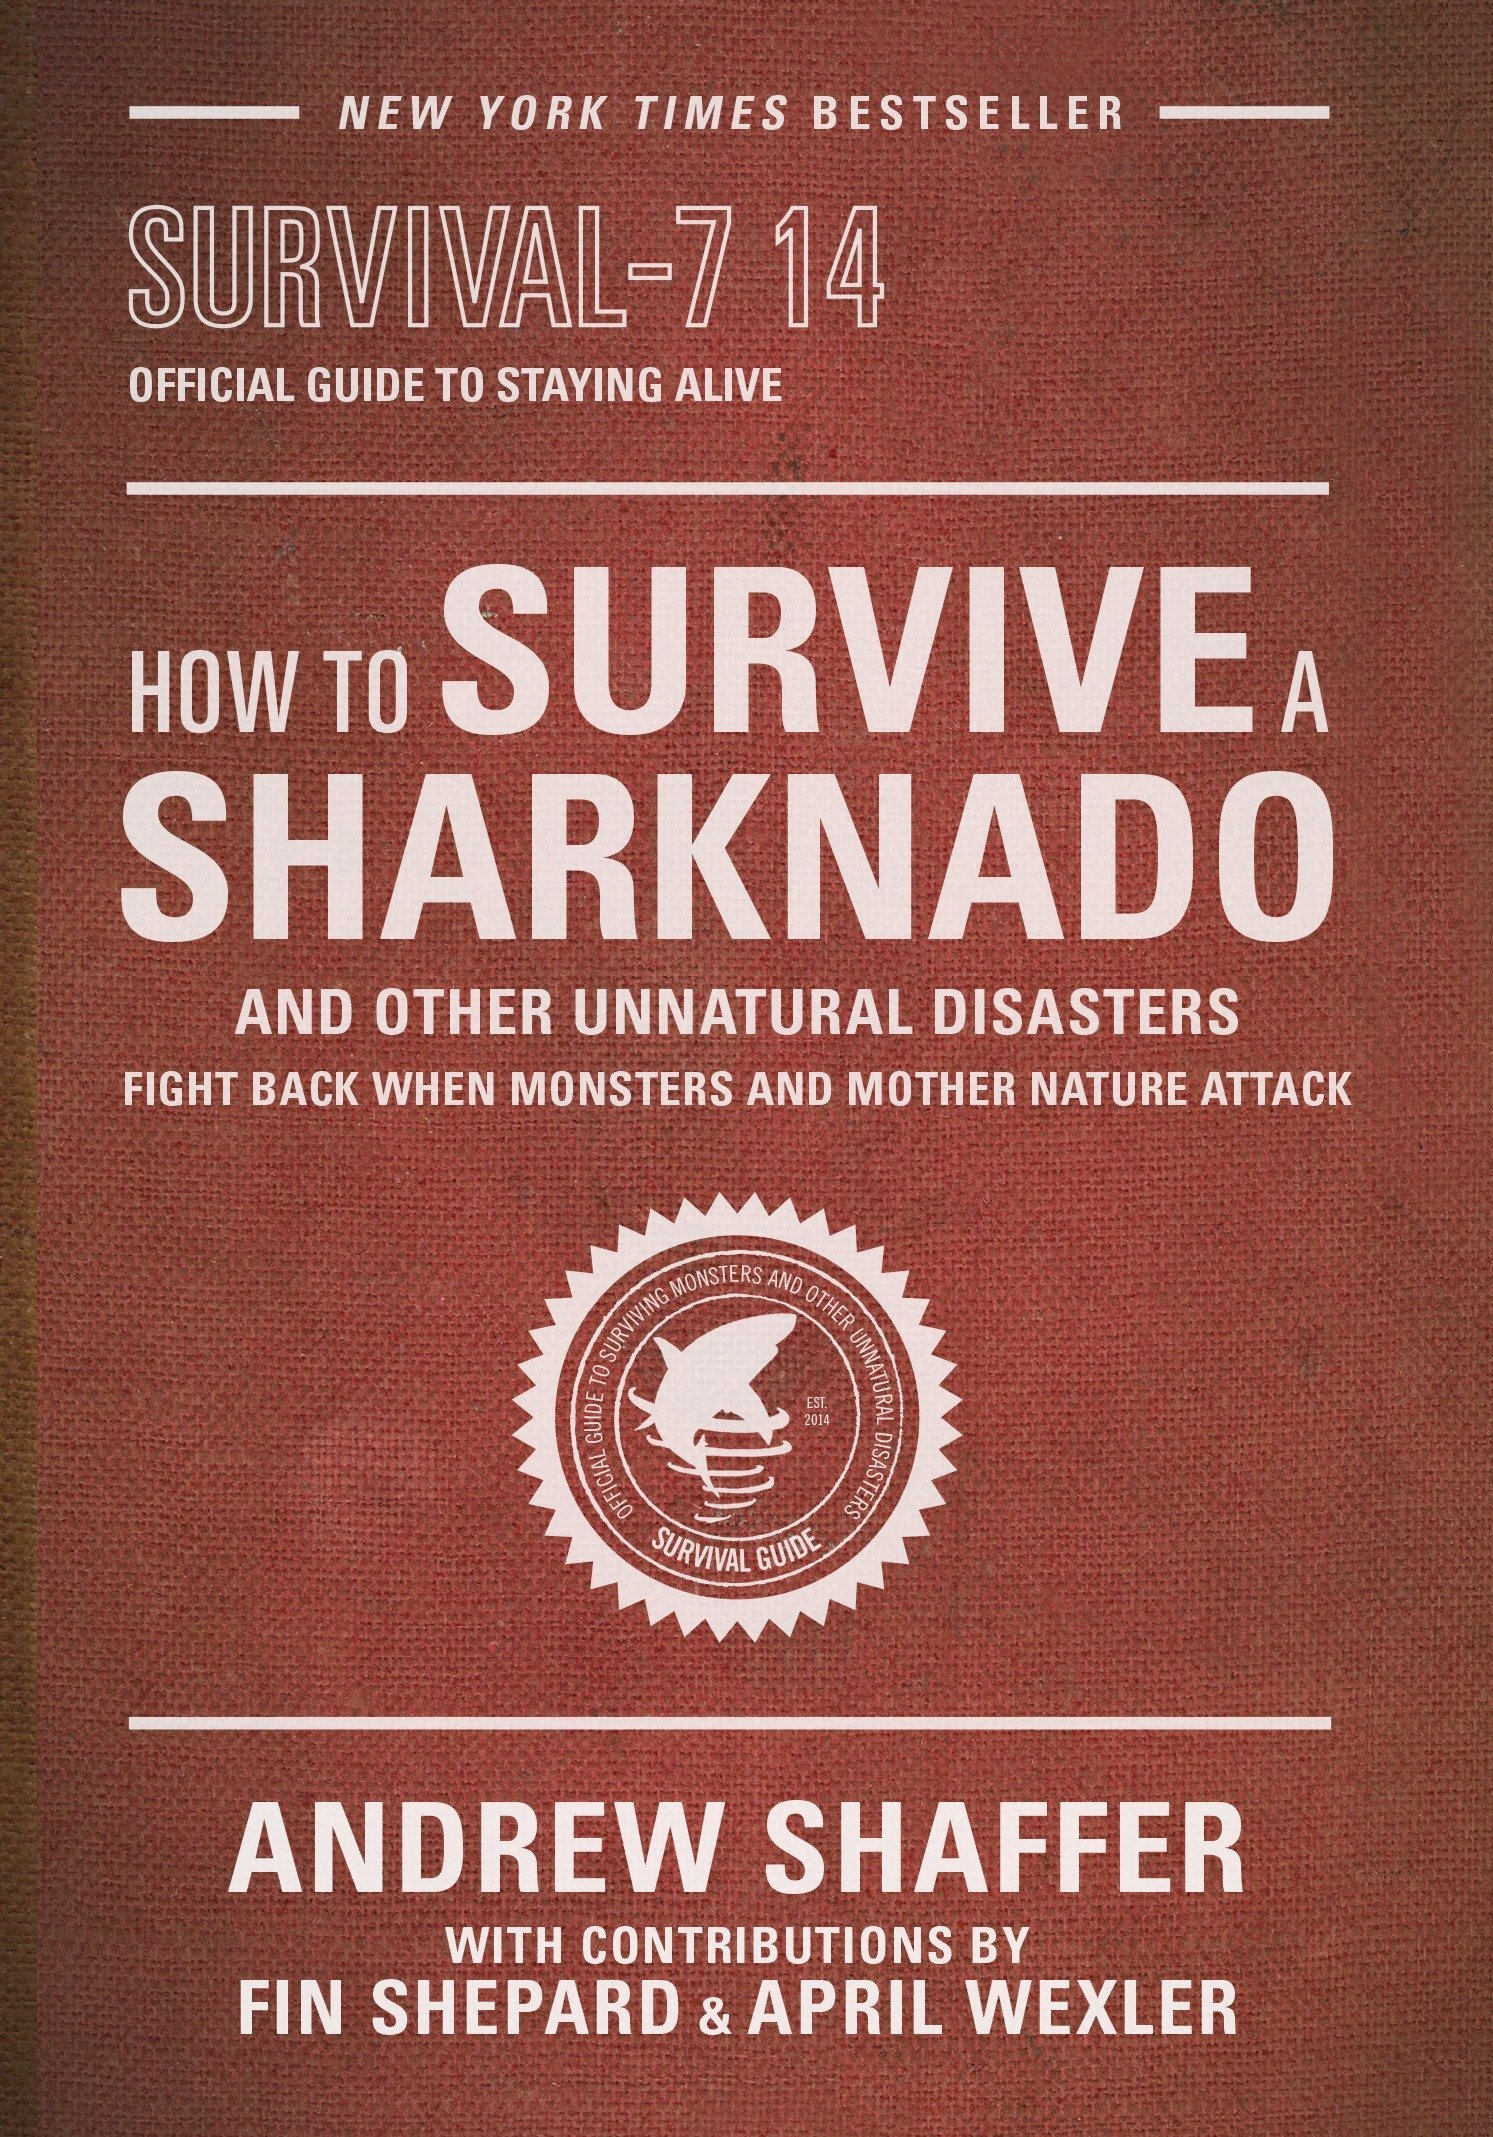 How to Survive a Sharknado: Fight Back When Monsters and Mother ...